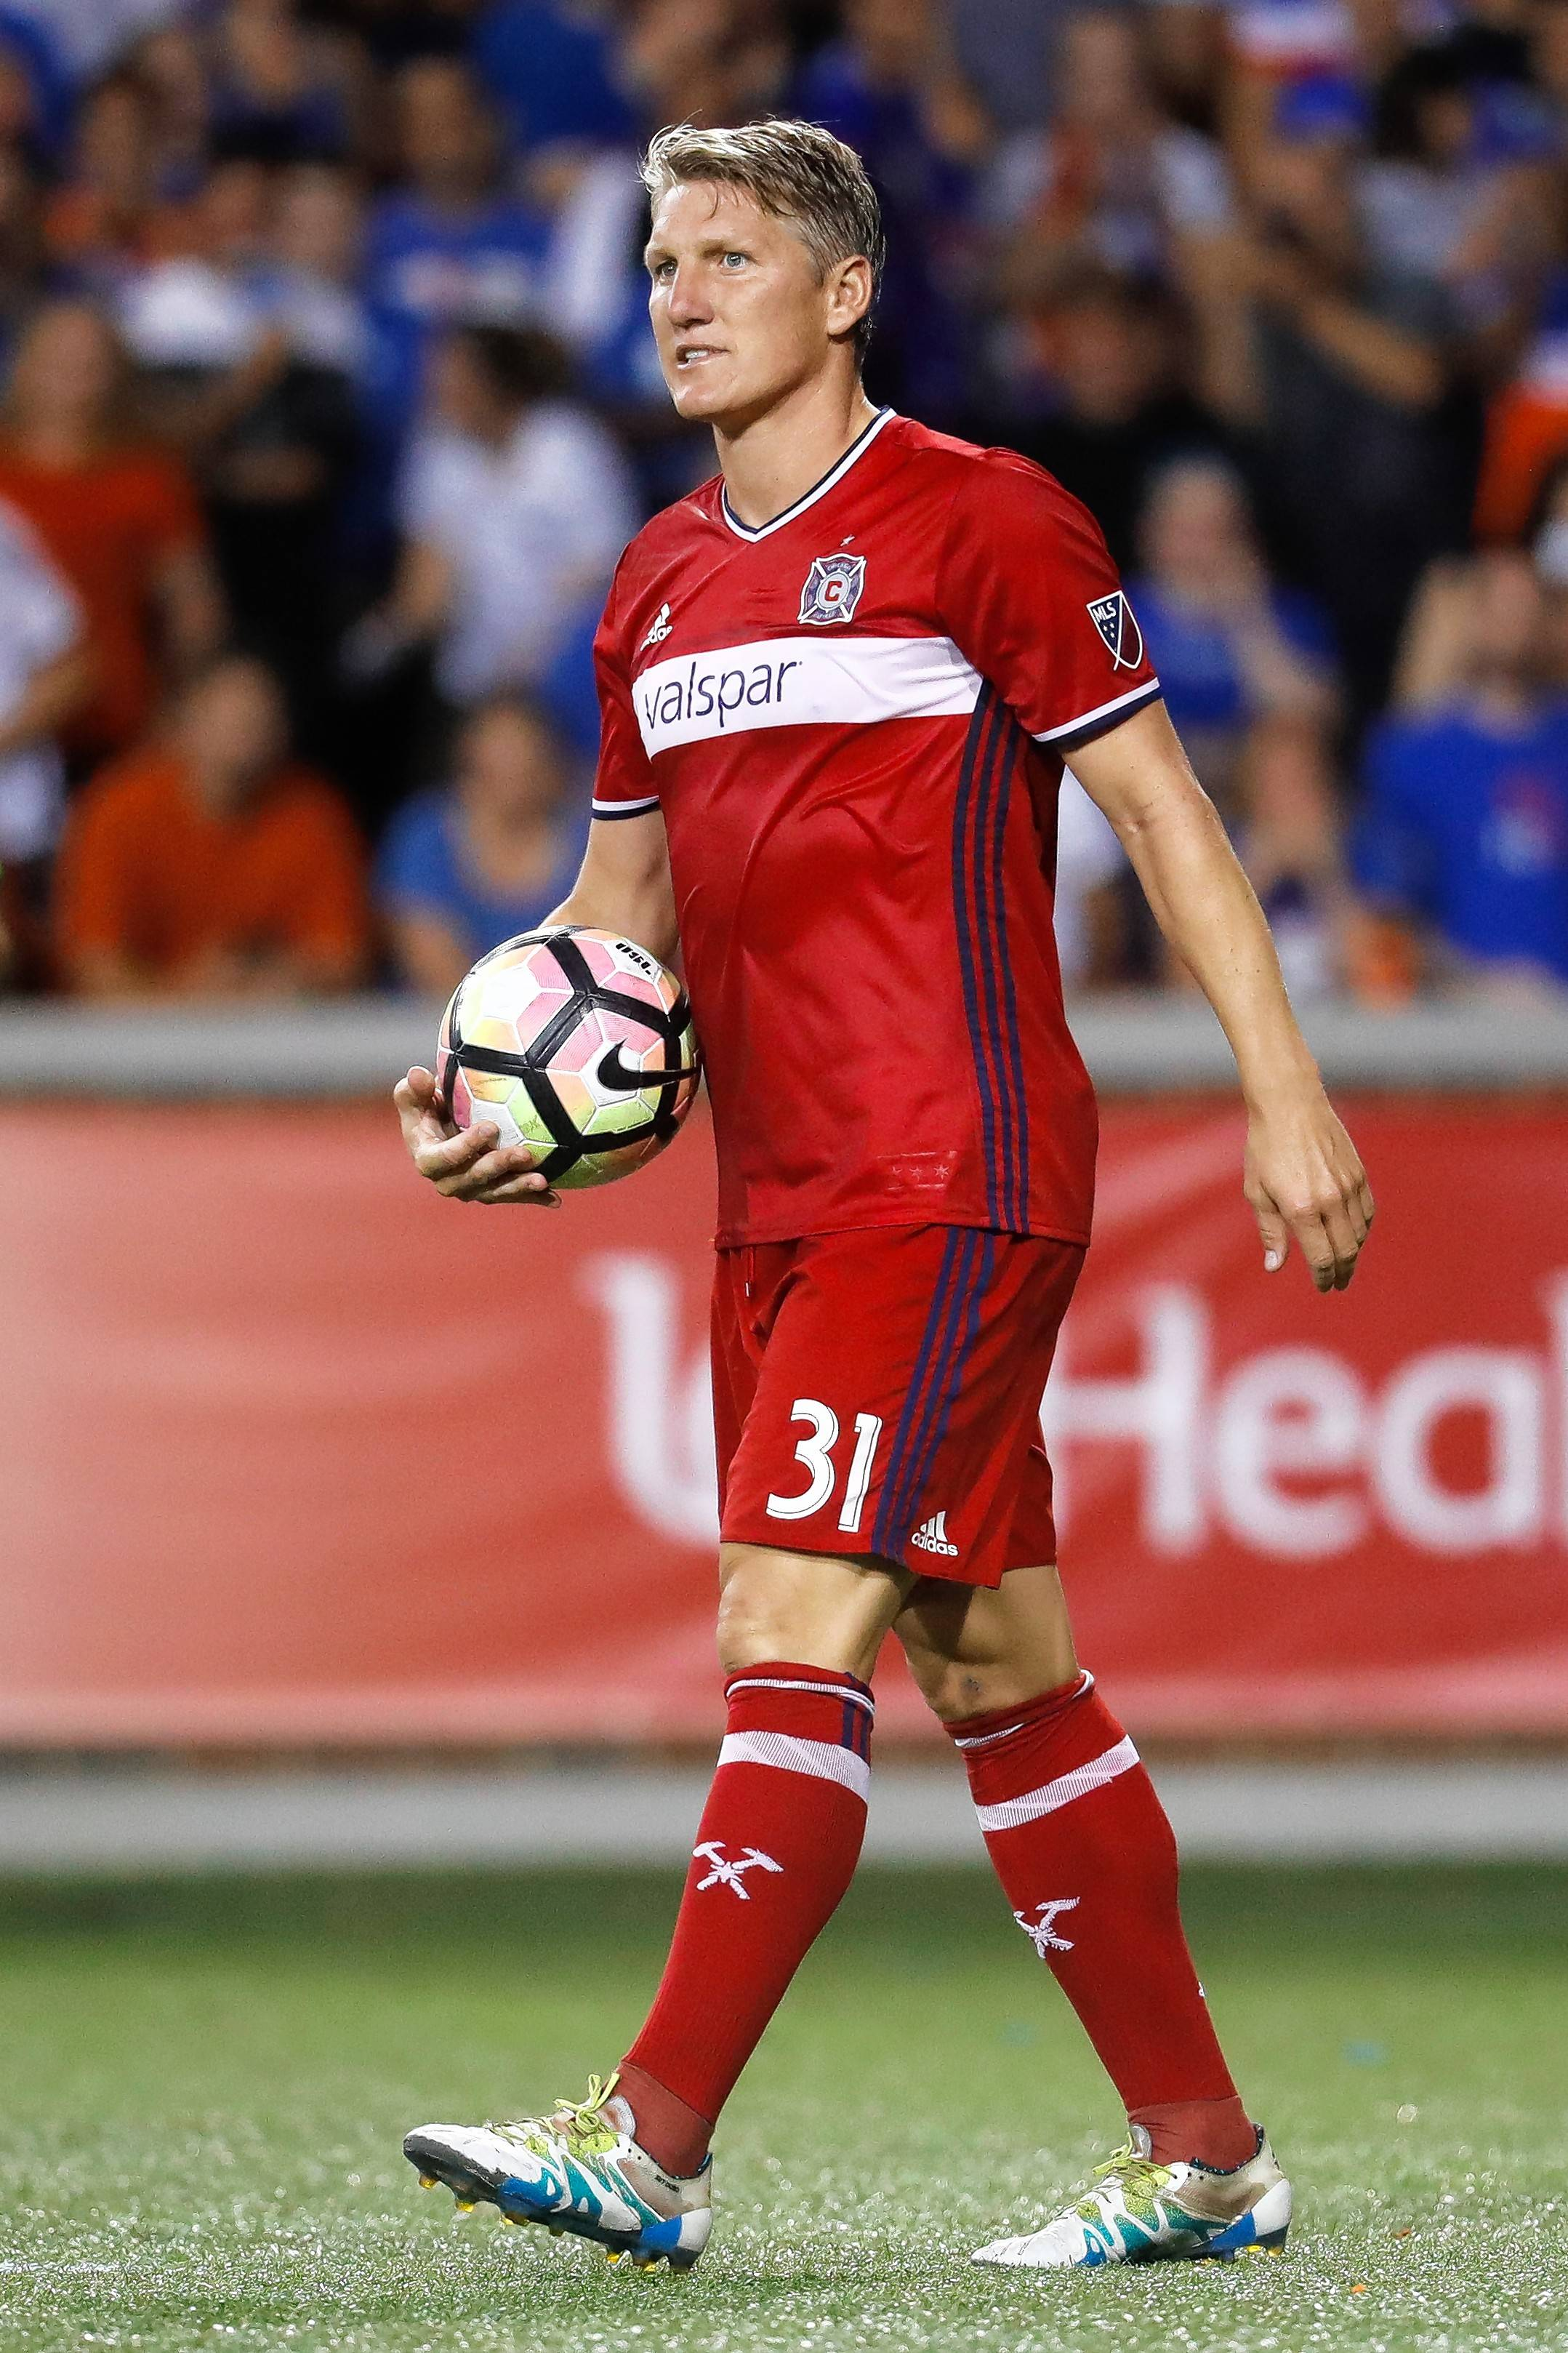 After strong season, where do Chicago Fire go from here?